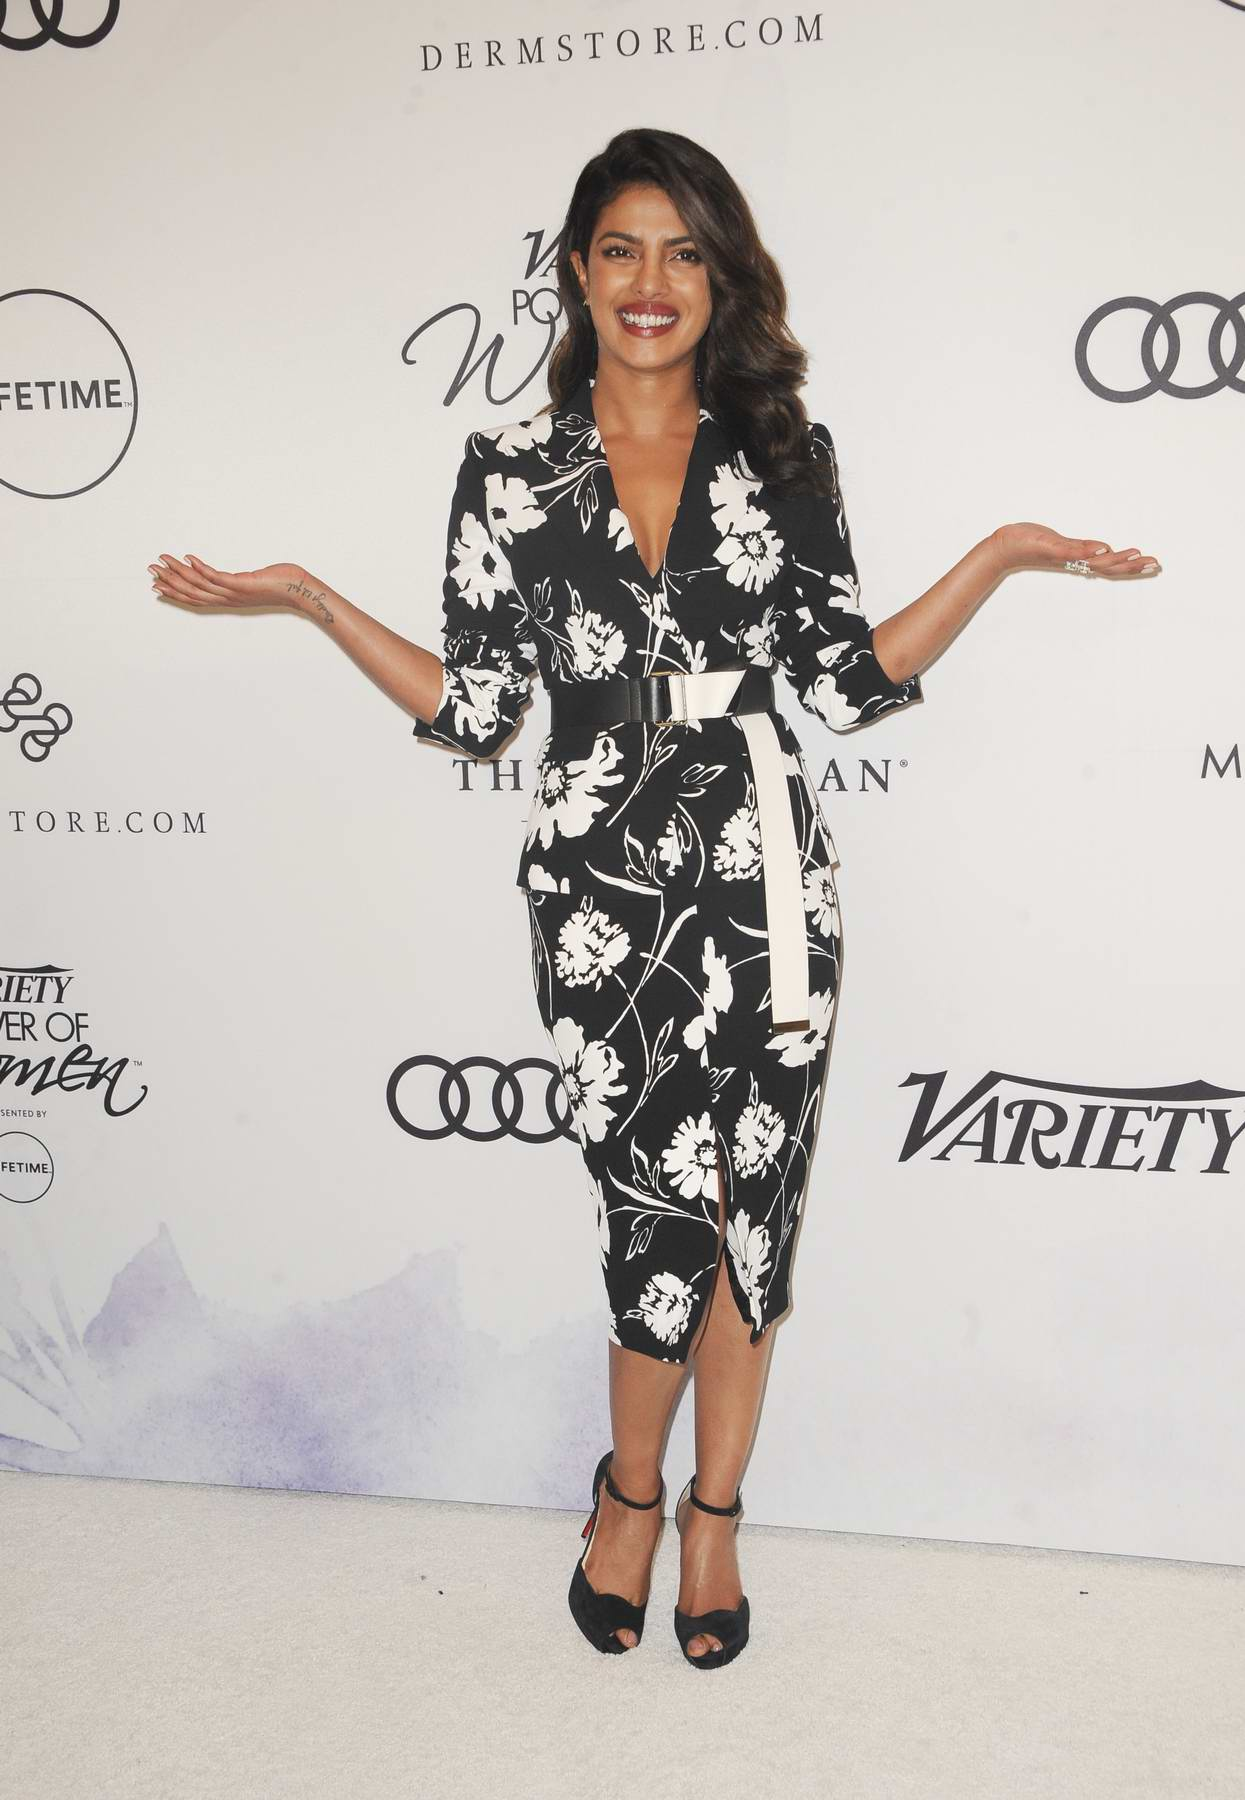 Priyanka Chopra at the Variety's Power of Women presented by Lifetime in Los Angeles